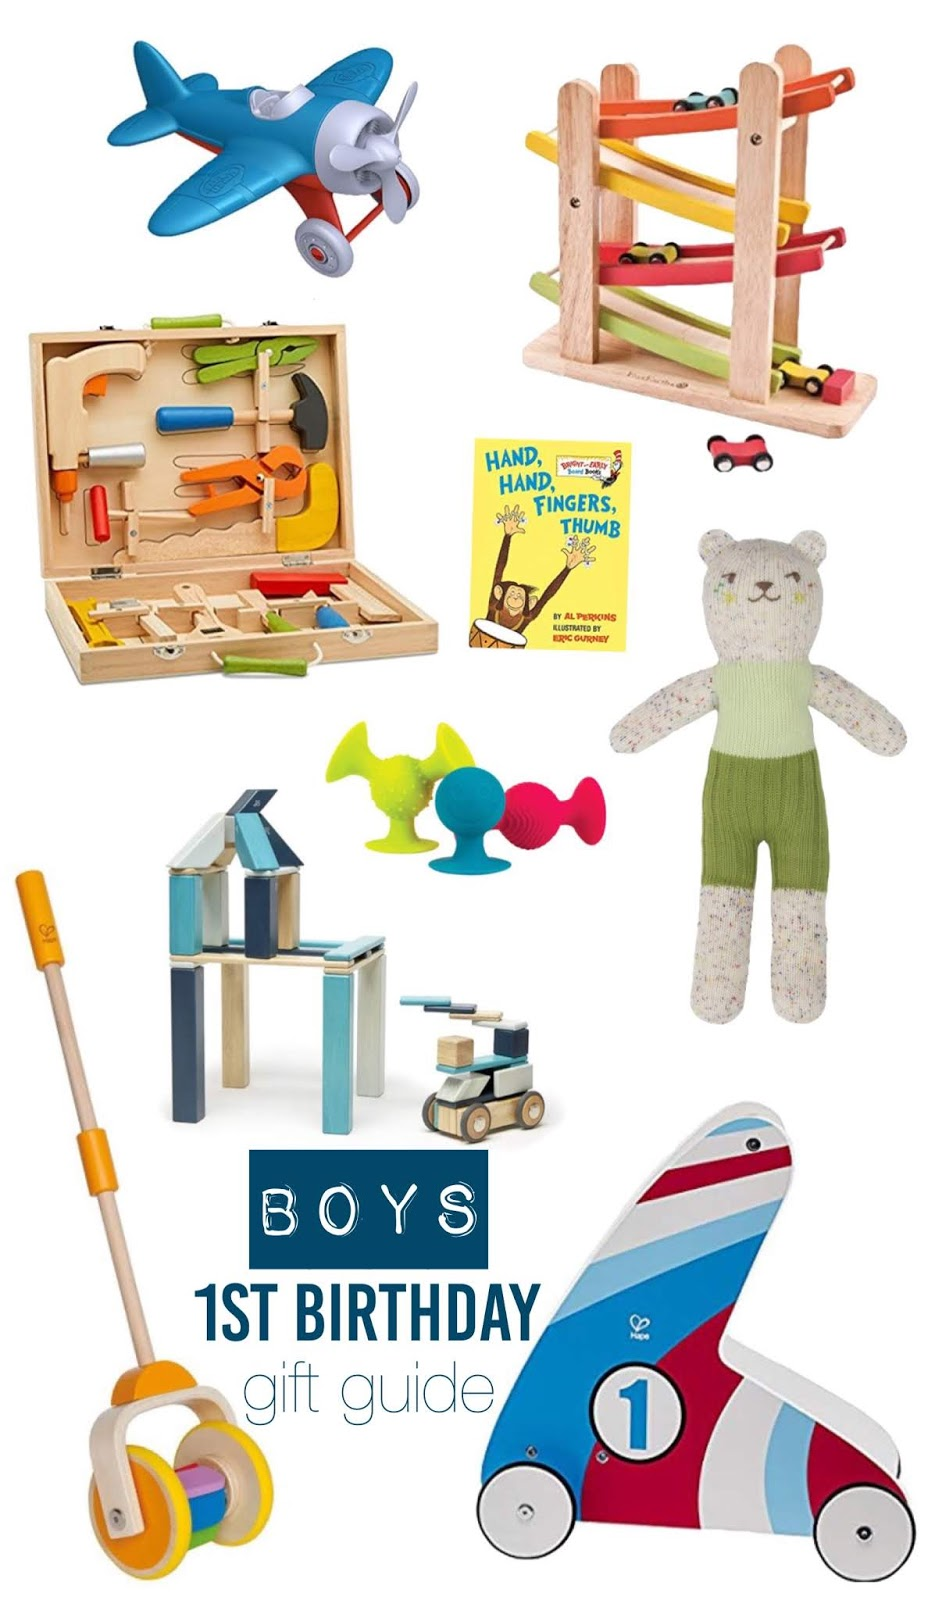 PS I Am Uhhhhhbsessed With The Little Race Car Walker Wooden Tool Set And Knit Bear Finding Things For A Boy Has Been So Fun